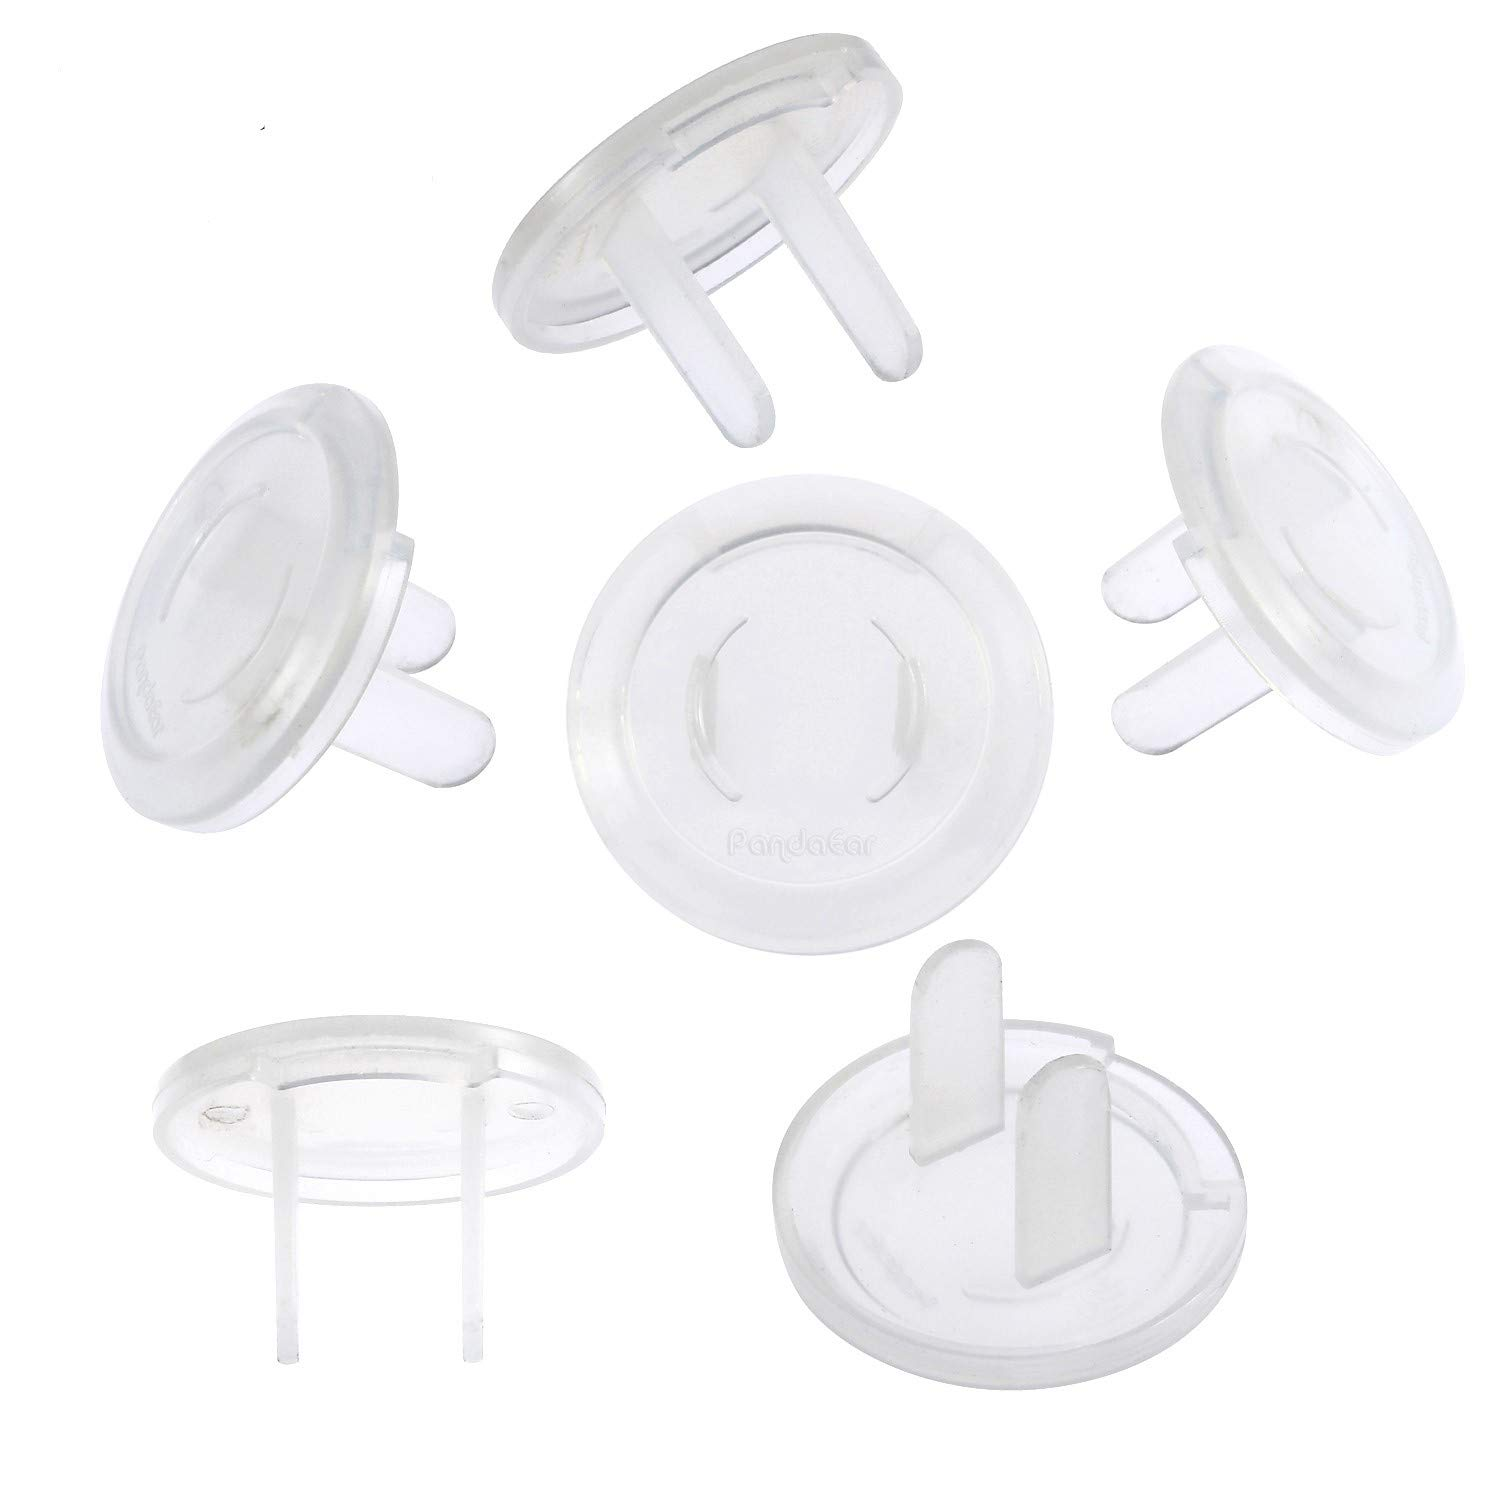 PandaEar Outlet Plug Covers(52 Pack) Clear Child Proof Electrical Protector Safety Caps with Adult Easy Release Concave Design